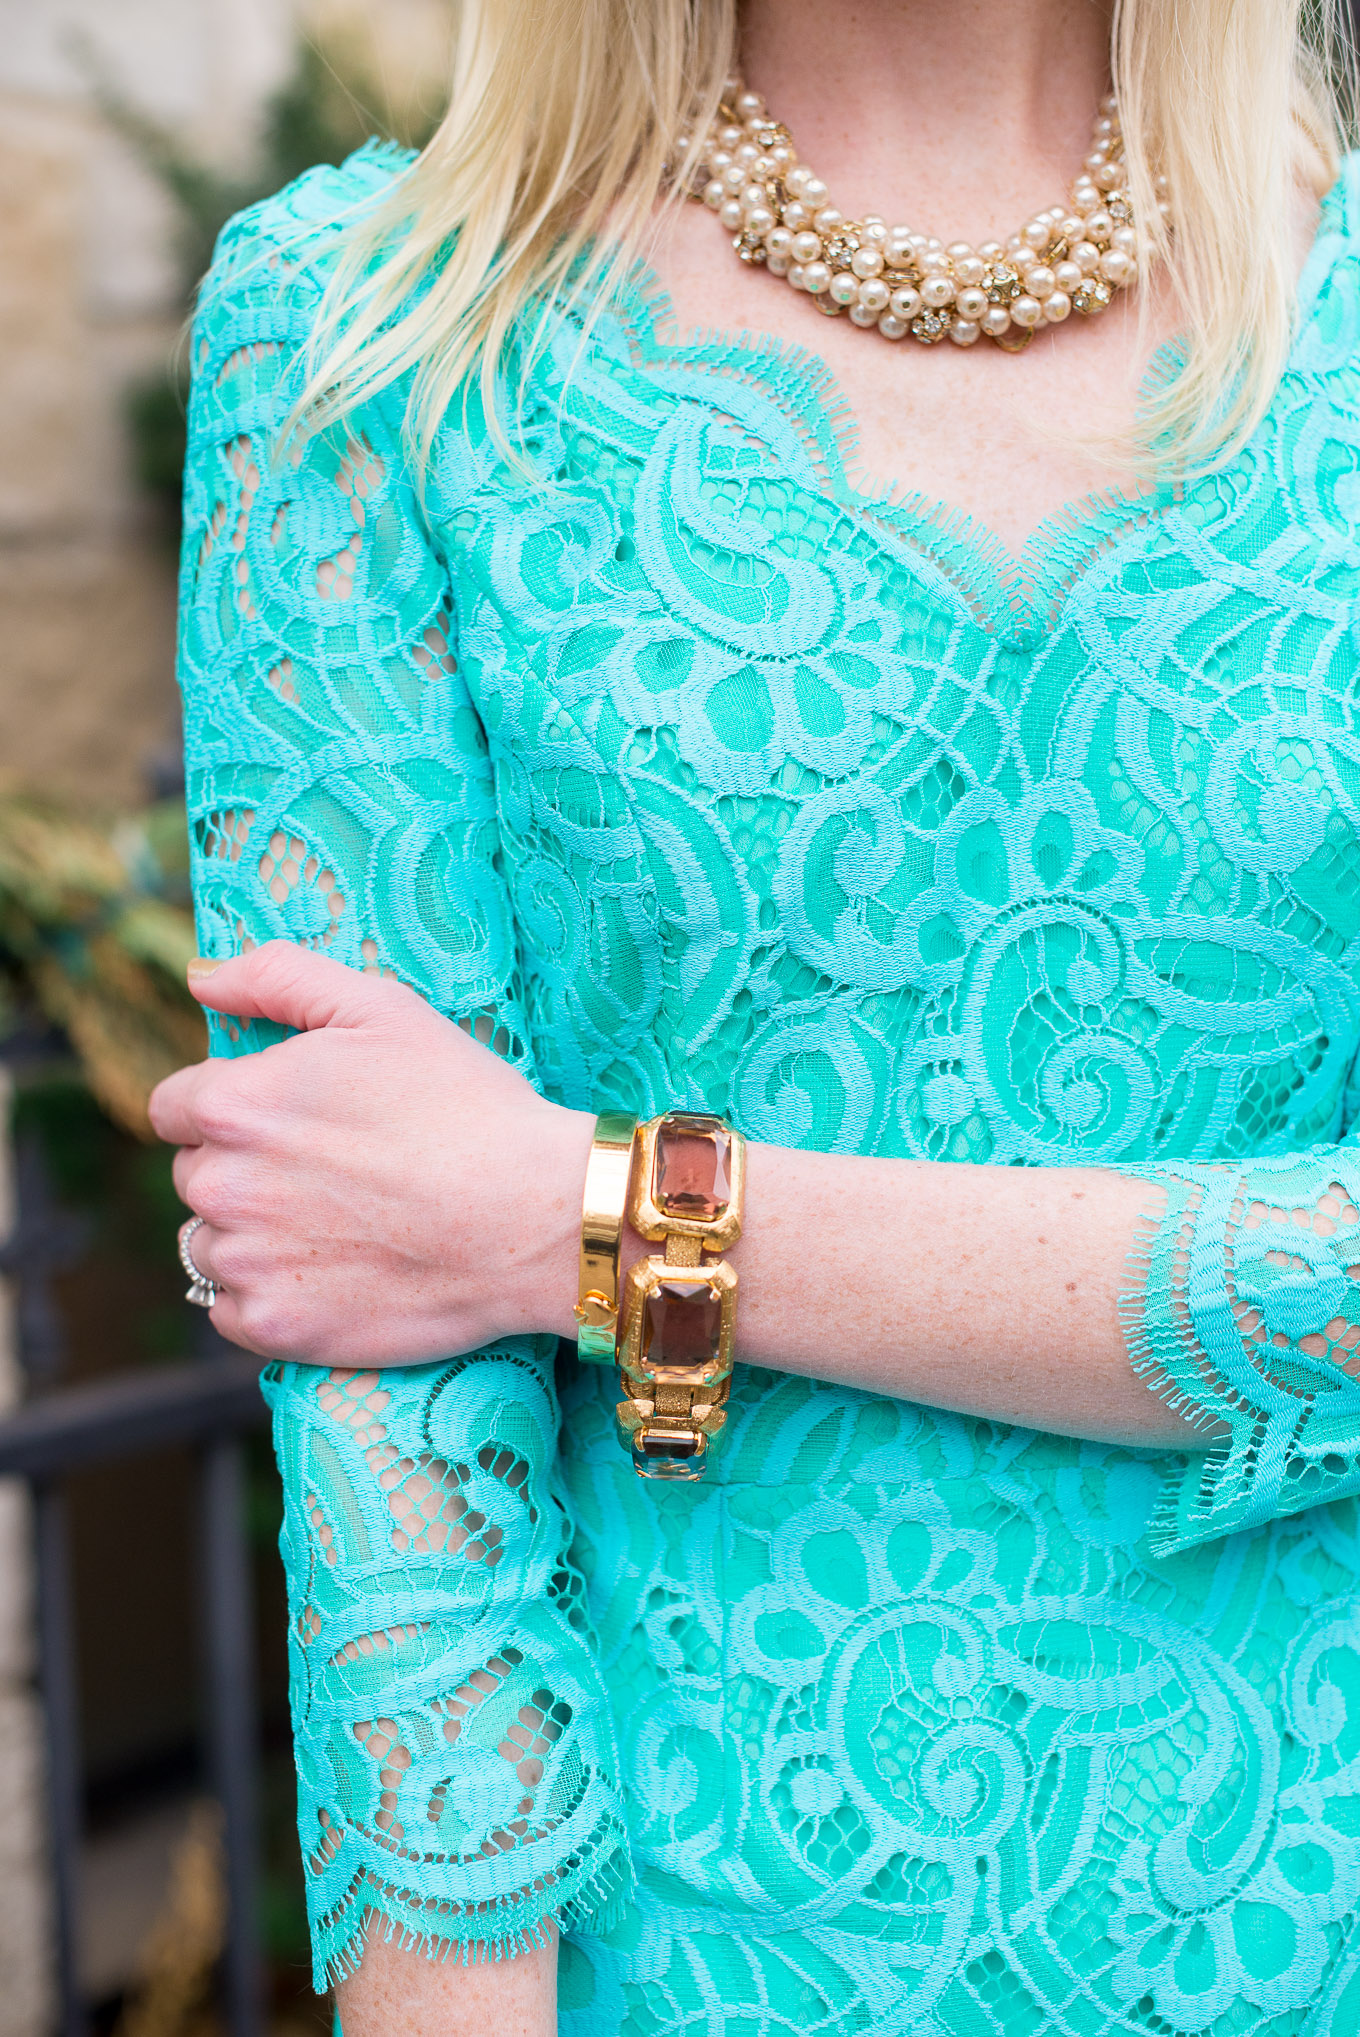 Lilly-Pulitzer-Lace-Dress-121